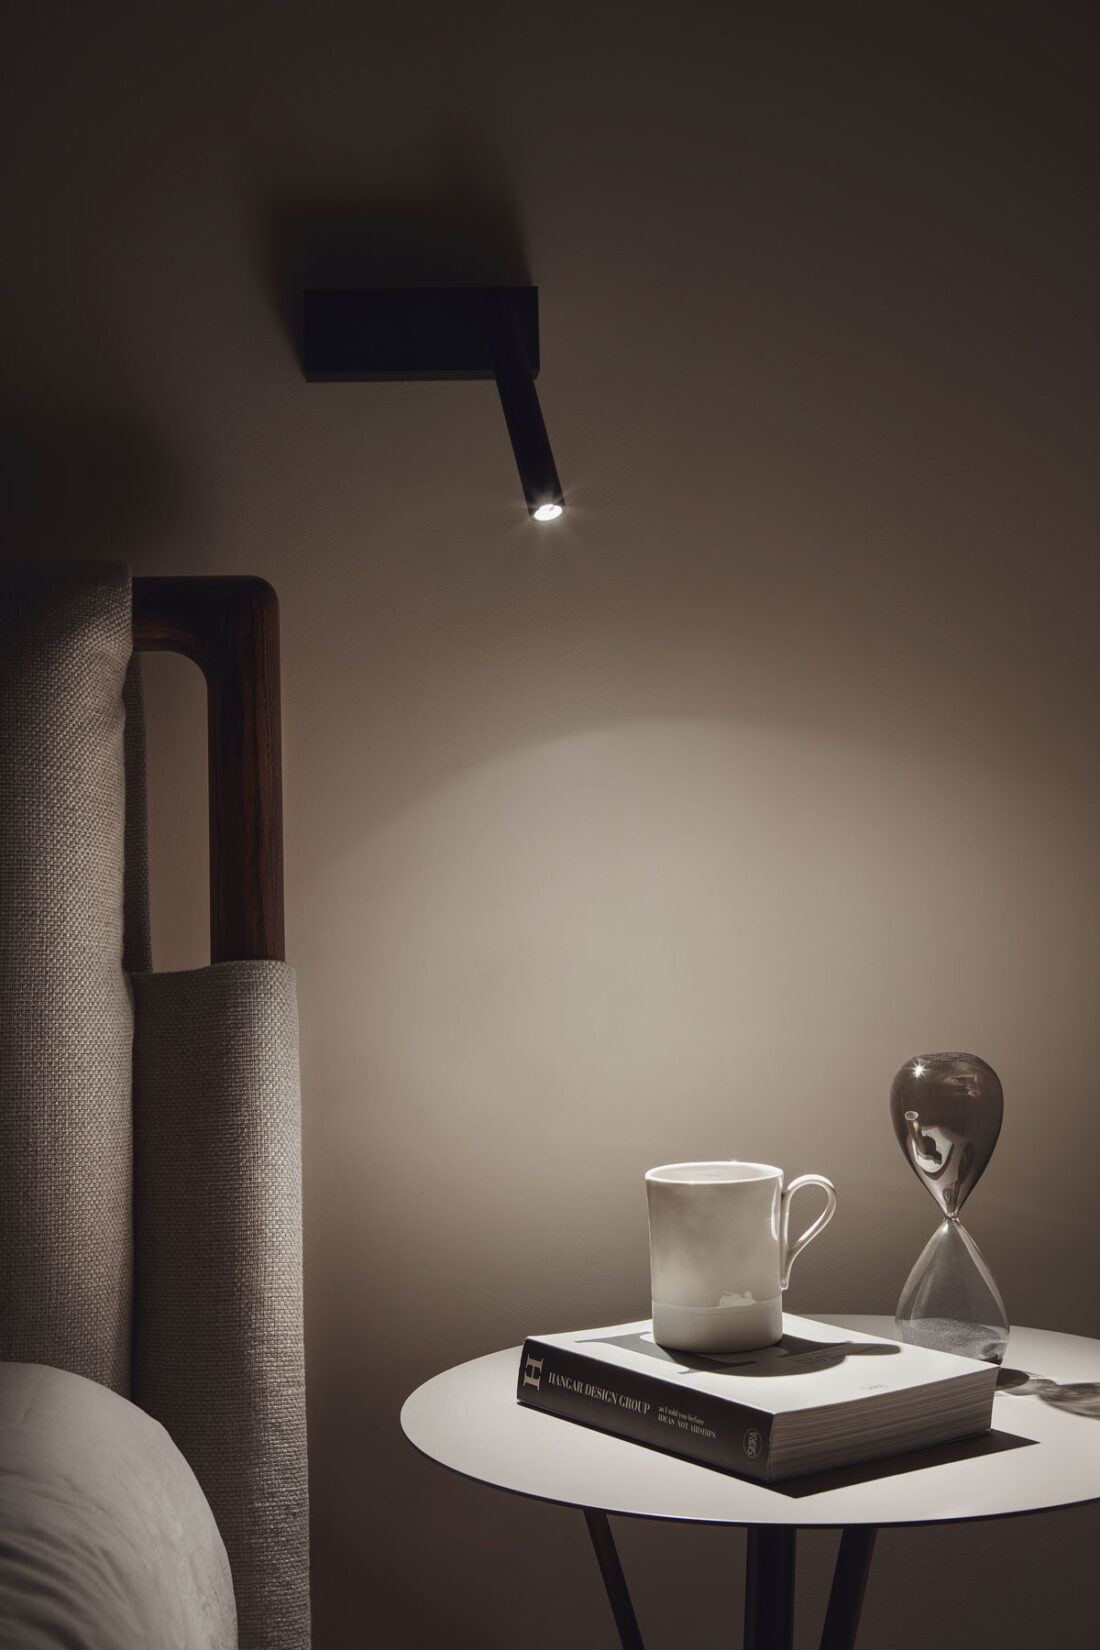 bedside table with accessories and a reading lamp